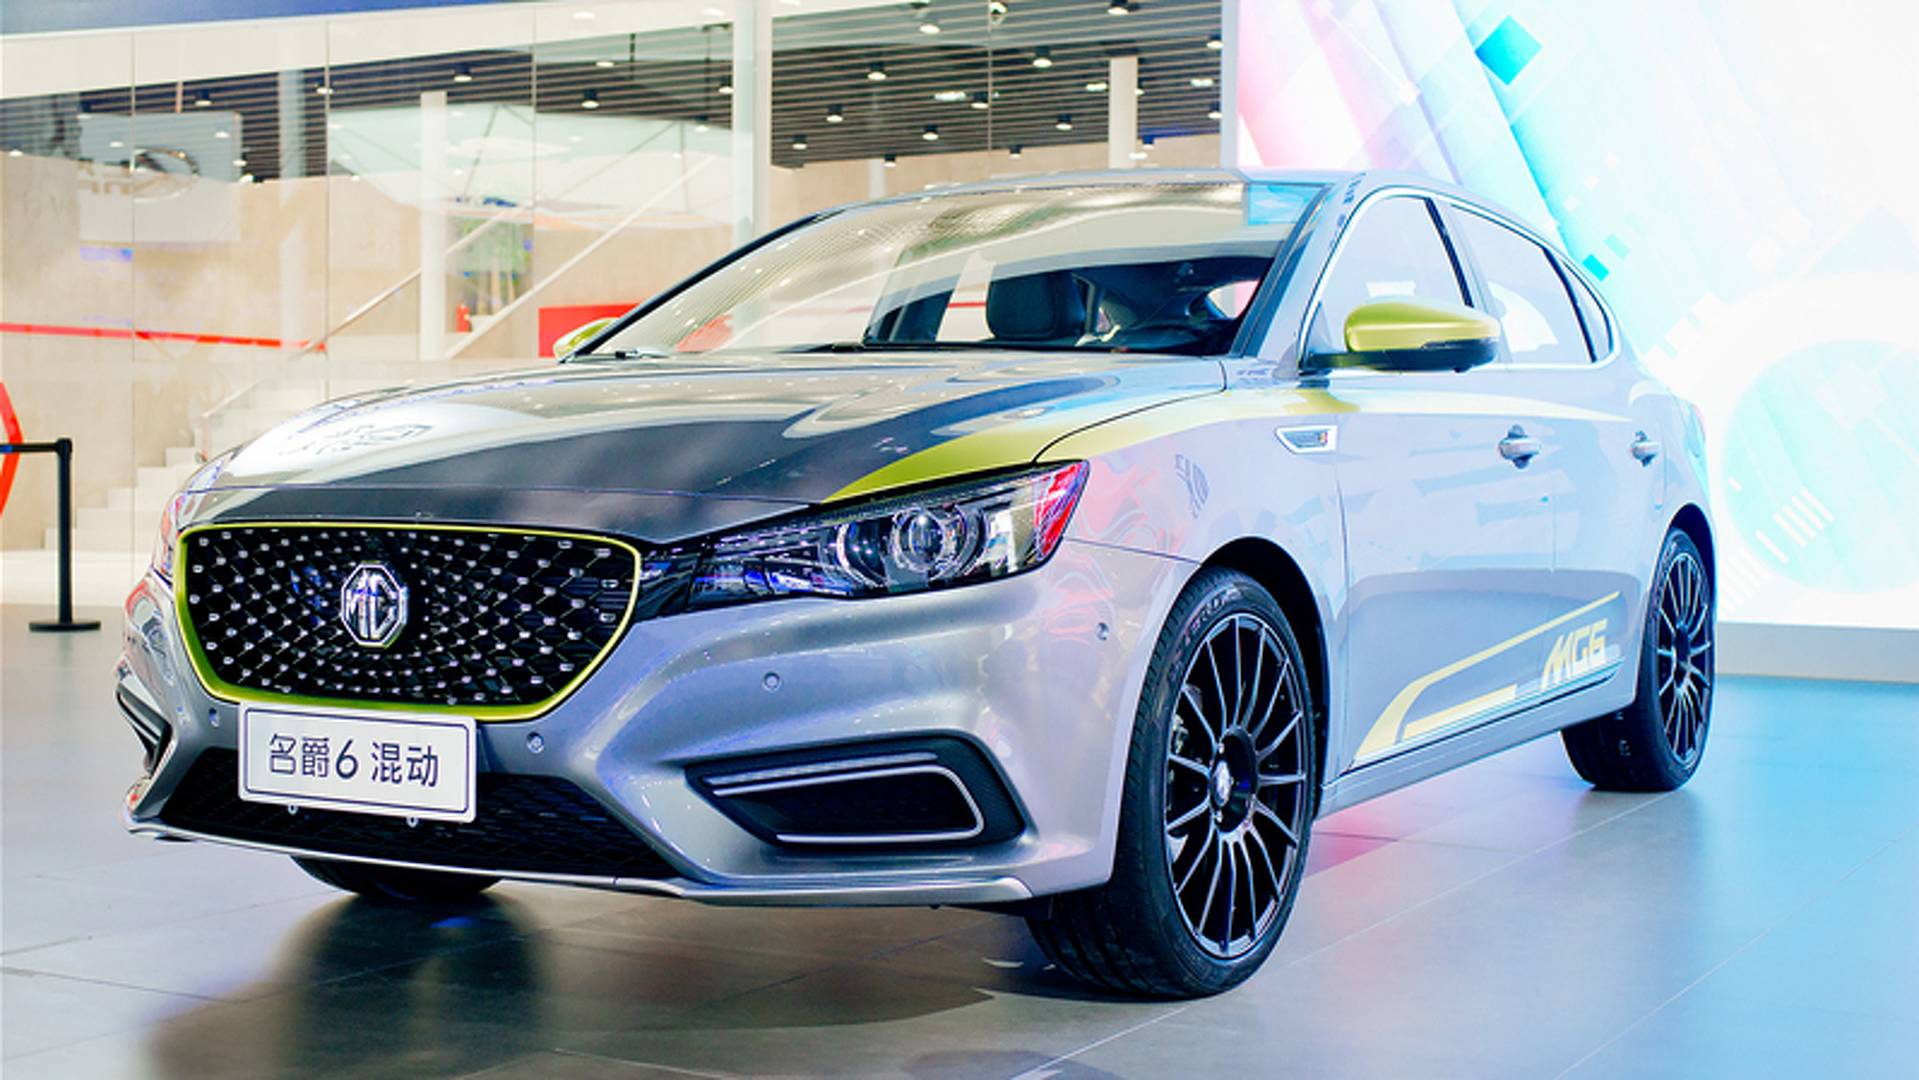 new mg6 makes chinese debut, set to come to the uk